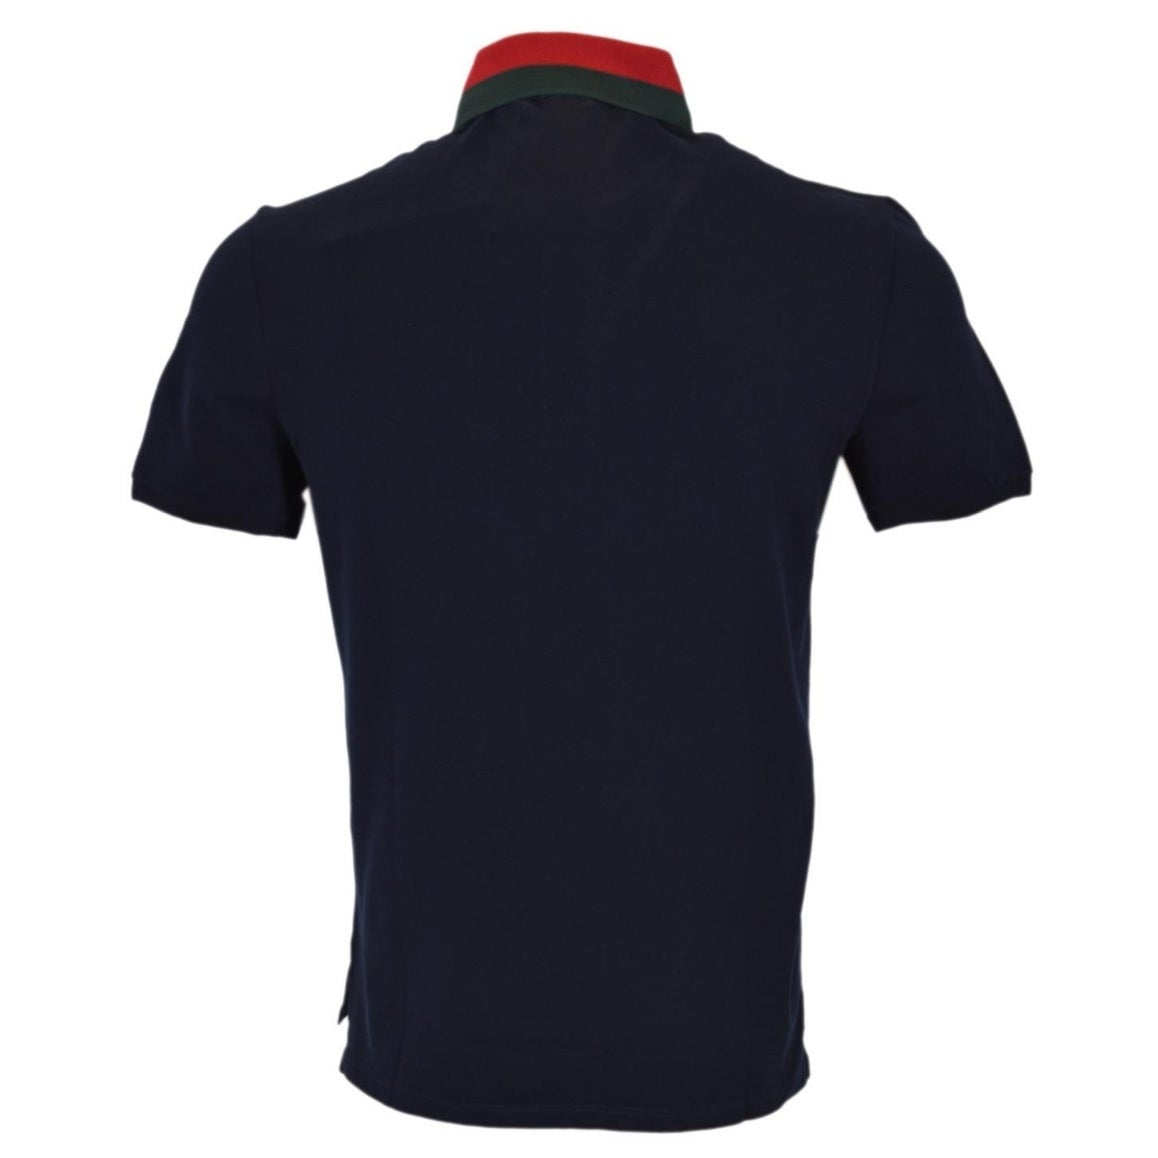 b77d556c Shop Gucci Men's 389031 Blue Cotton Red Green Collar SLIM FIT Polo Shirt L  - Free Shipping Today - Overstock - 19512737